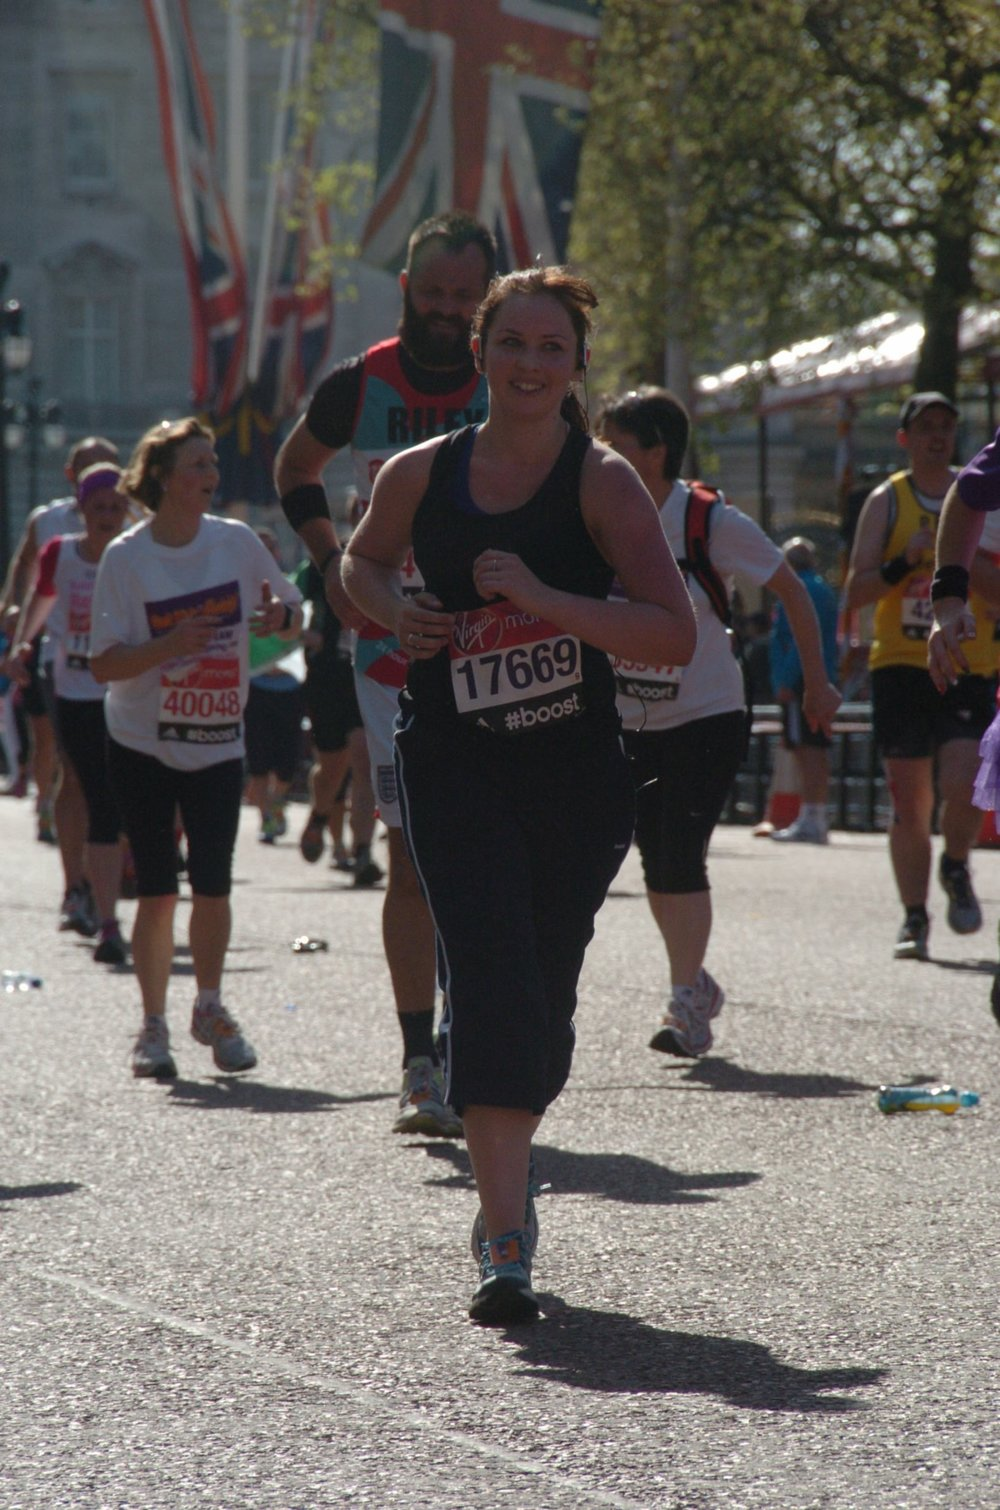 Running the London Marathon in 2014. Nearing the finish!